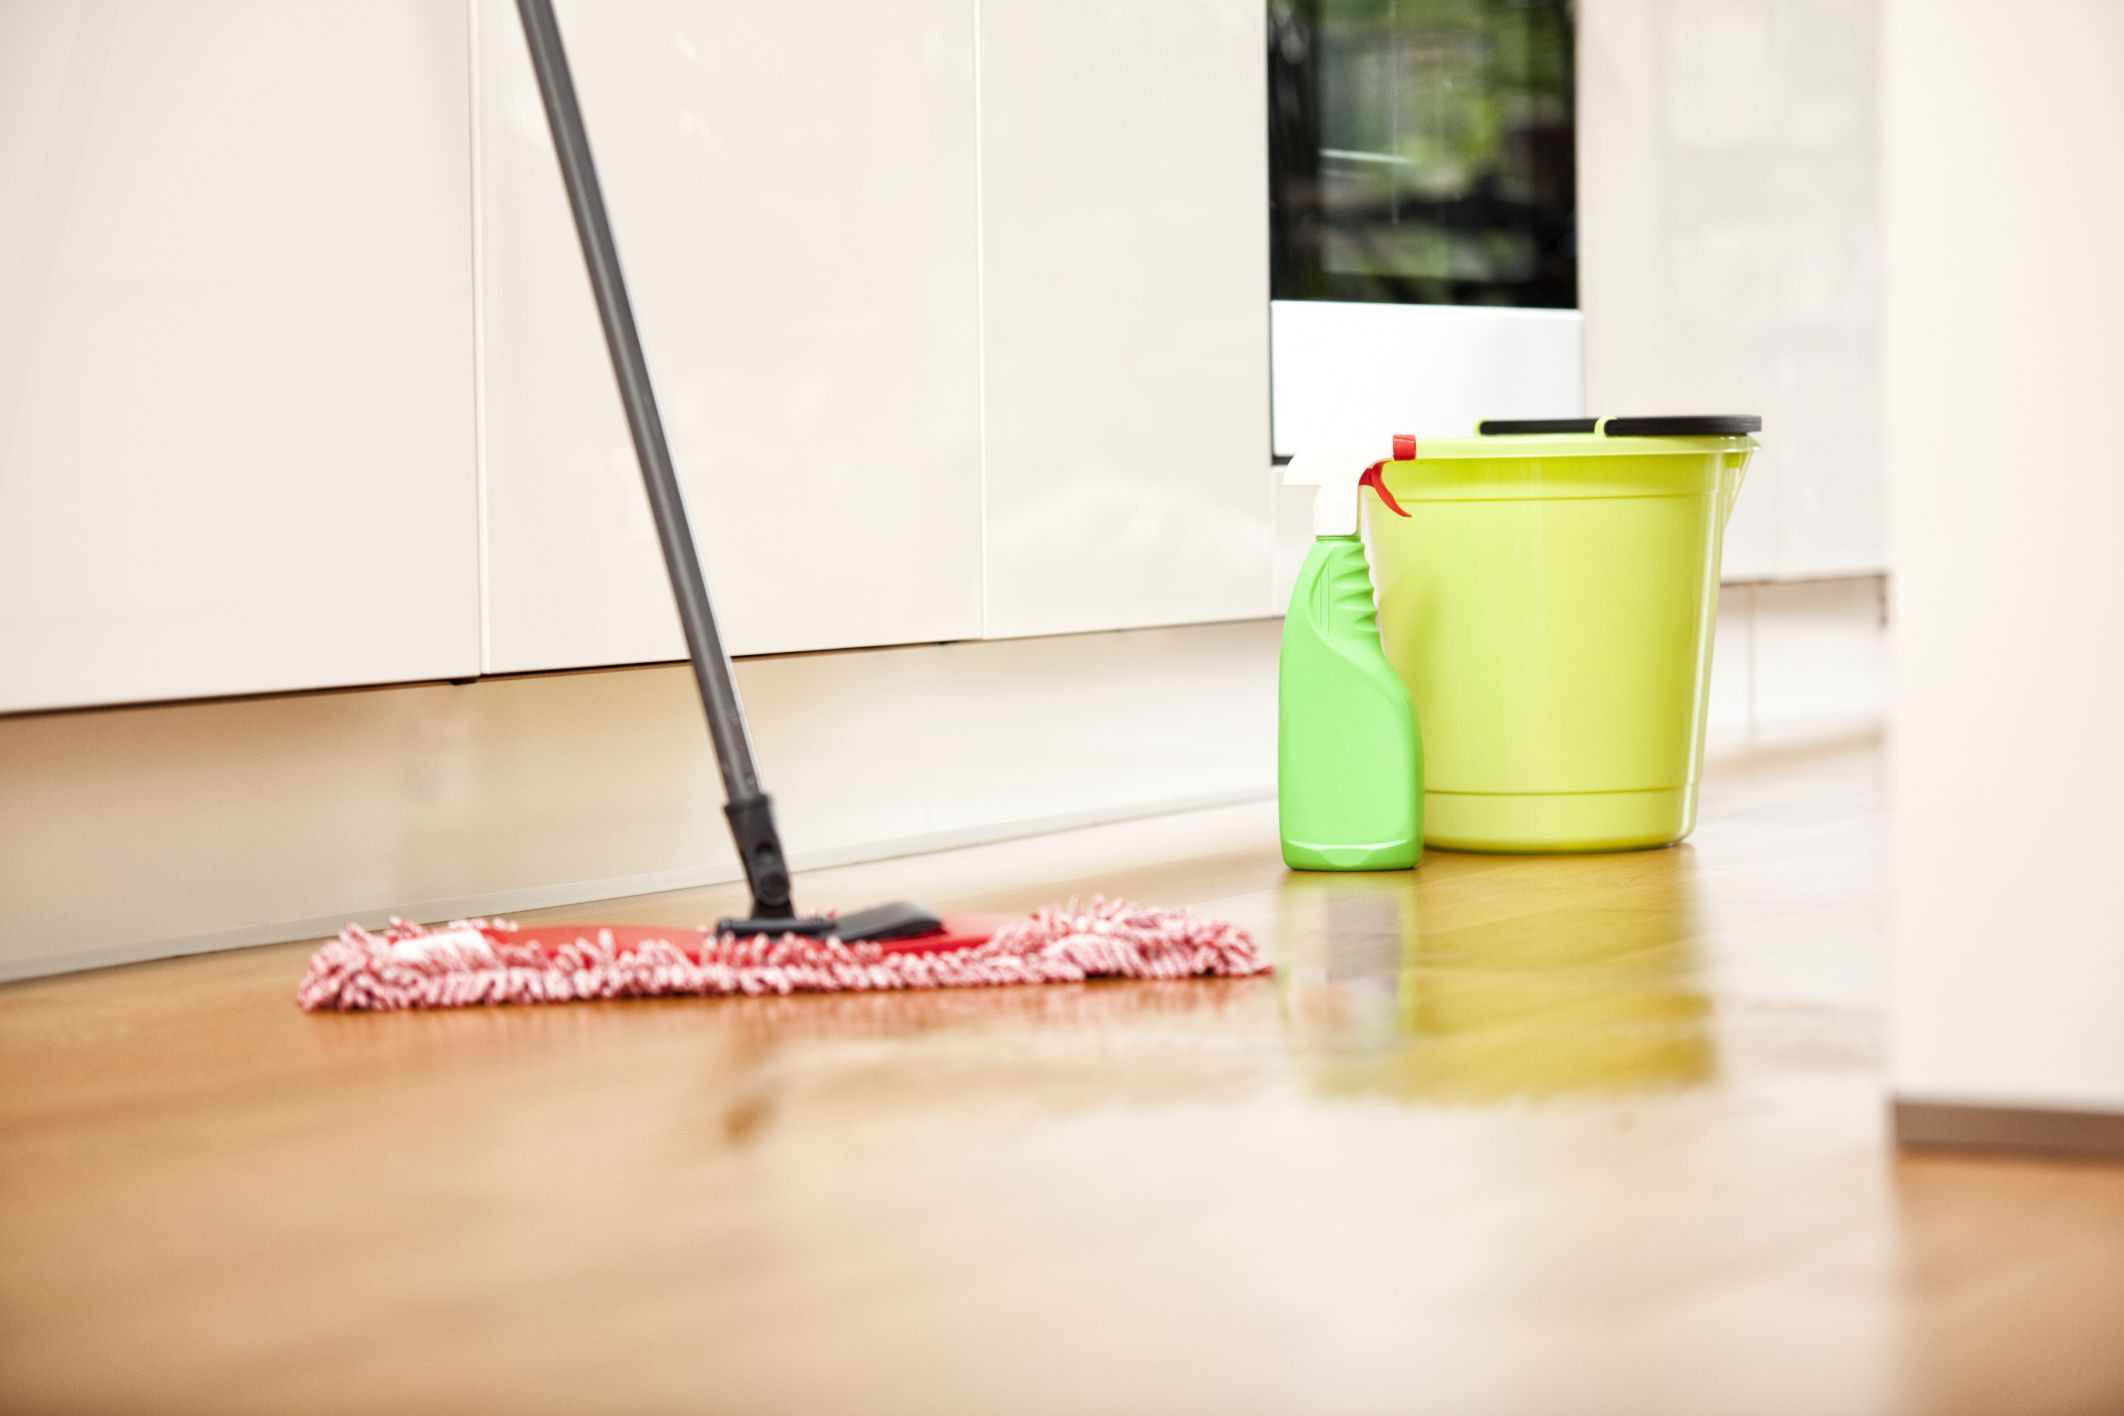 hardwood floor cleaning hacks of 17 cleaning uses for dish soap around the home pertaining to floor mopping mop and cleaning products